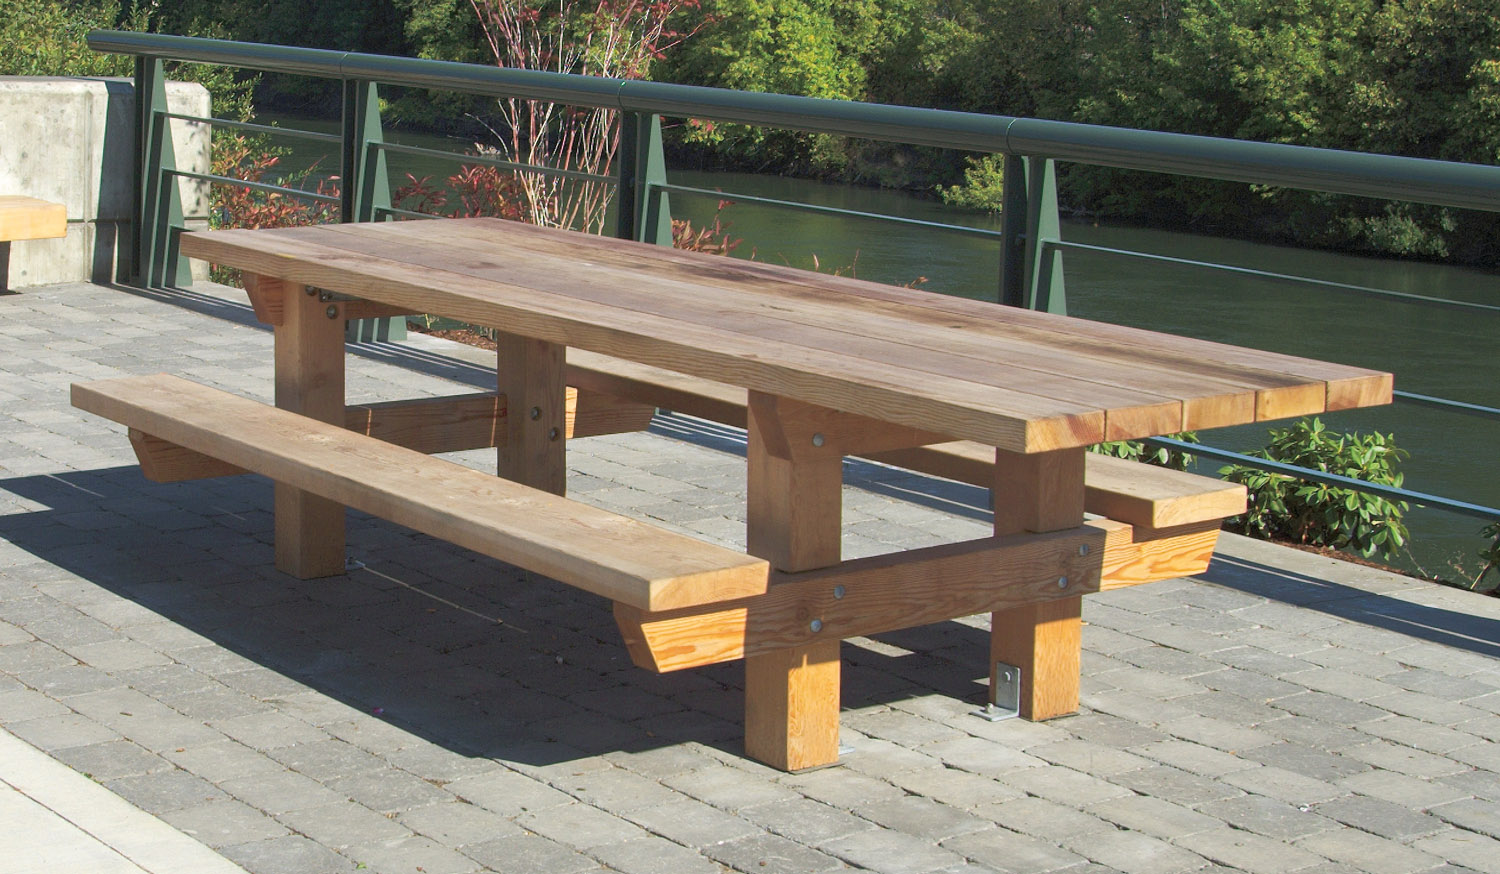 8 Foot Picnic Table Frame